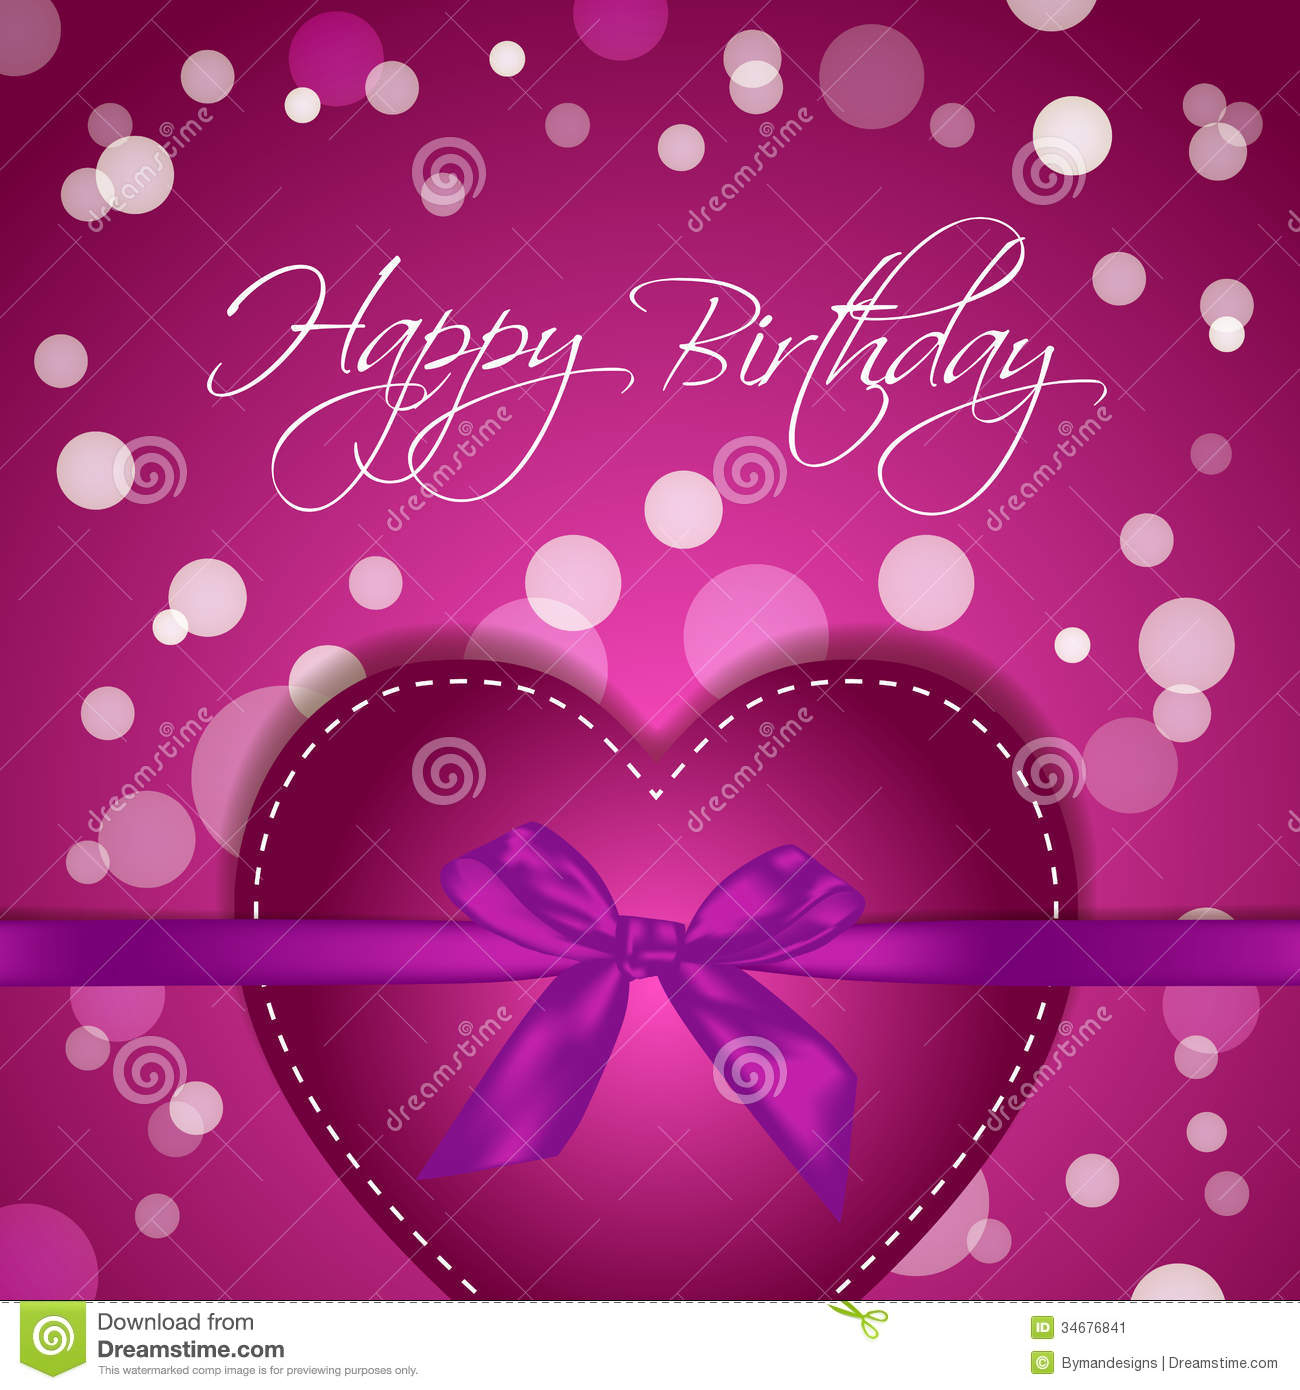 birthday message images download ; heart-gift-greeting-card-happy-birthday-message-34676841